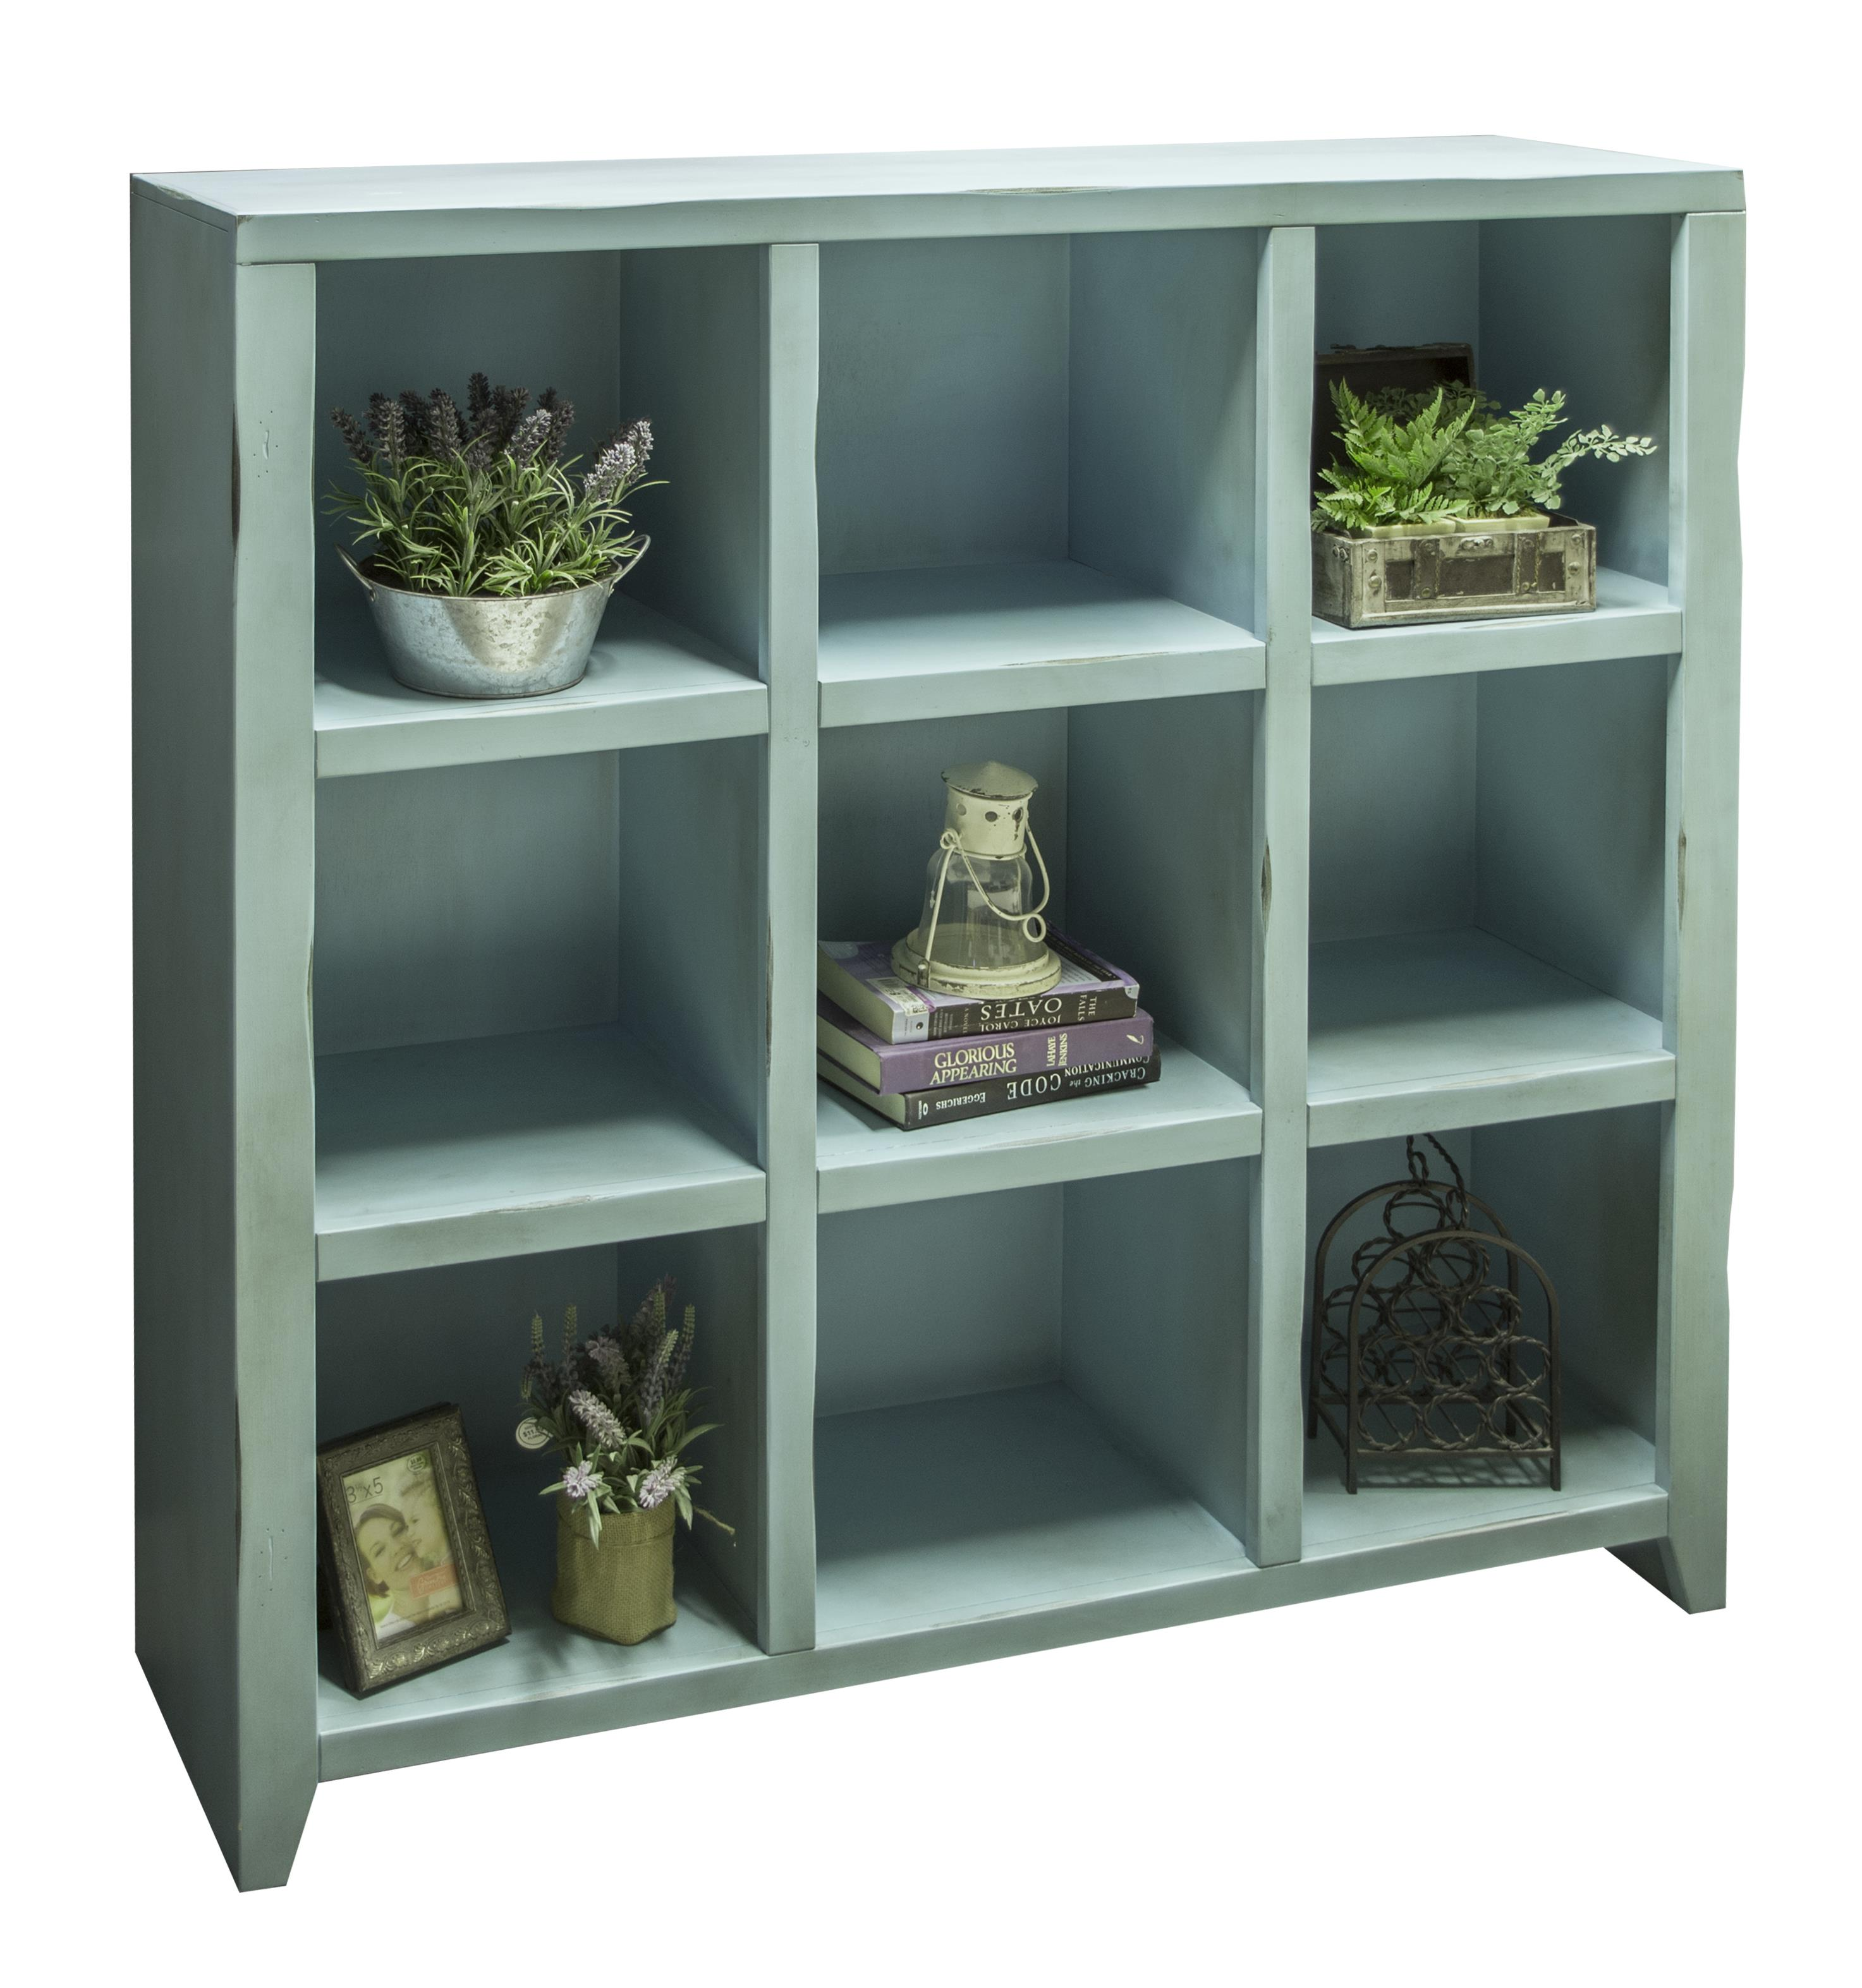 Legends Furniture Calistoga Collection Calistoga 9-Cubicle Bookcase - Item Number: CA6203-RBL